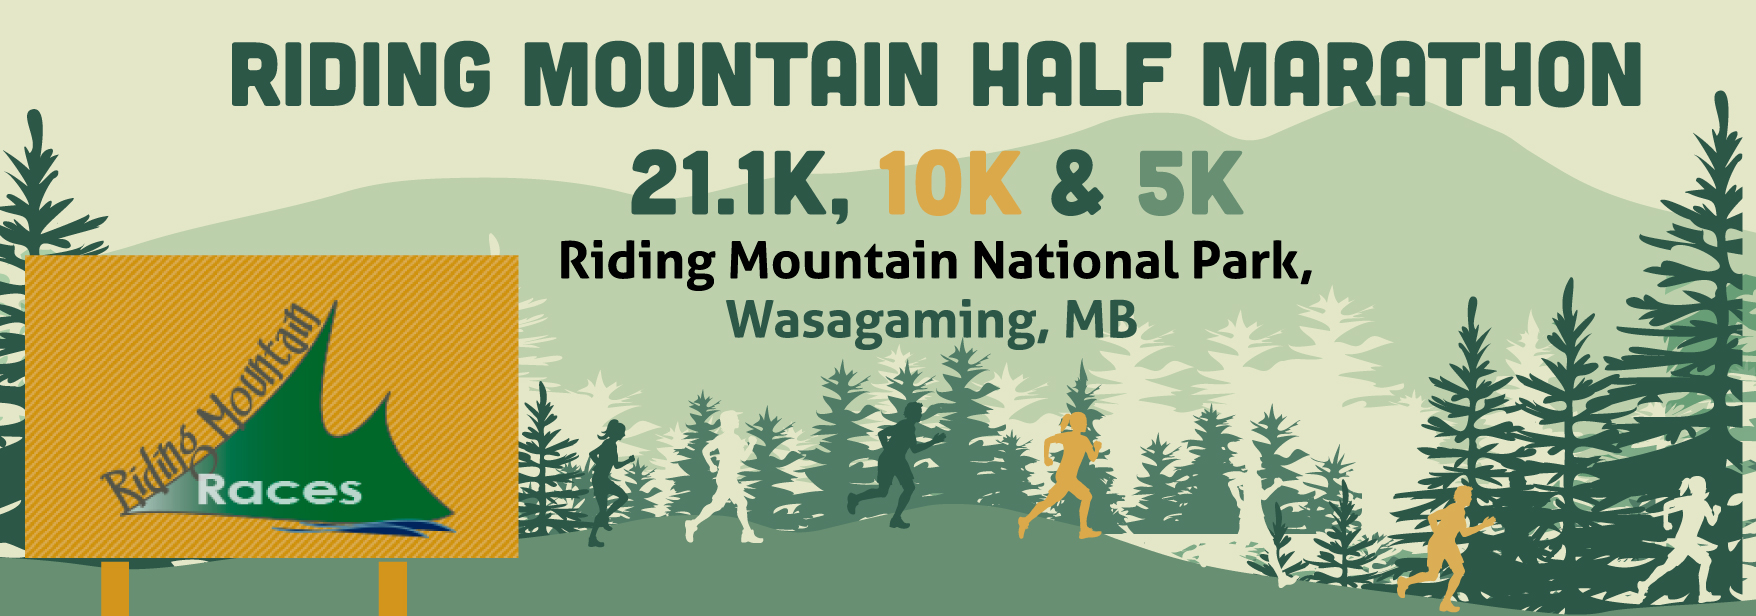 Riding Mountain Half Marathon 21.1K, 10K & 5K